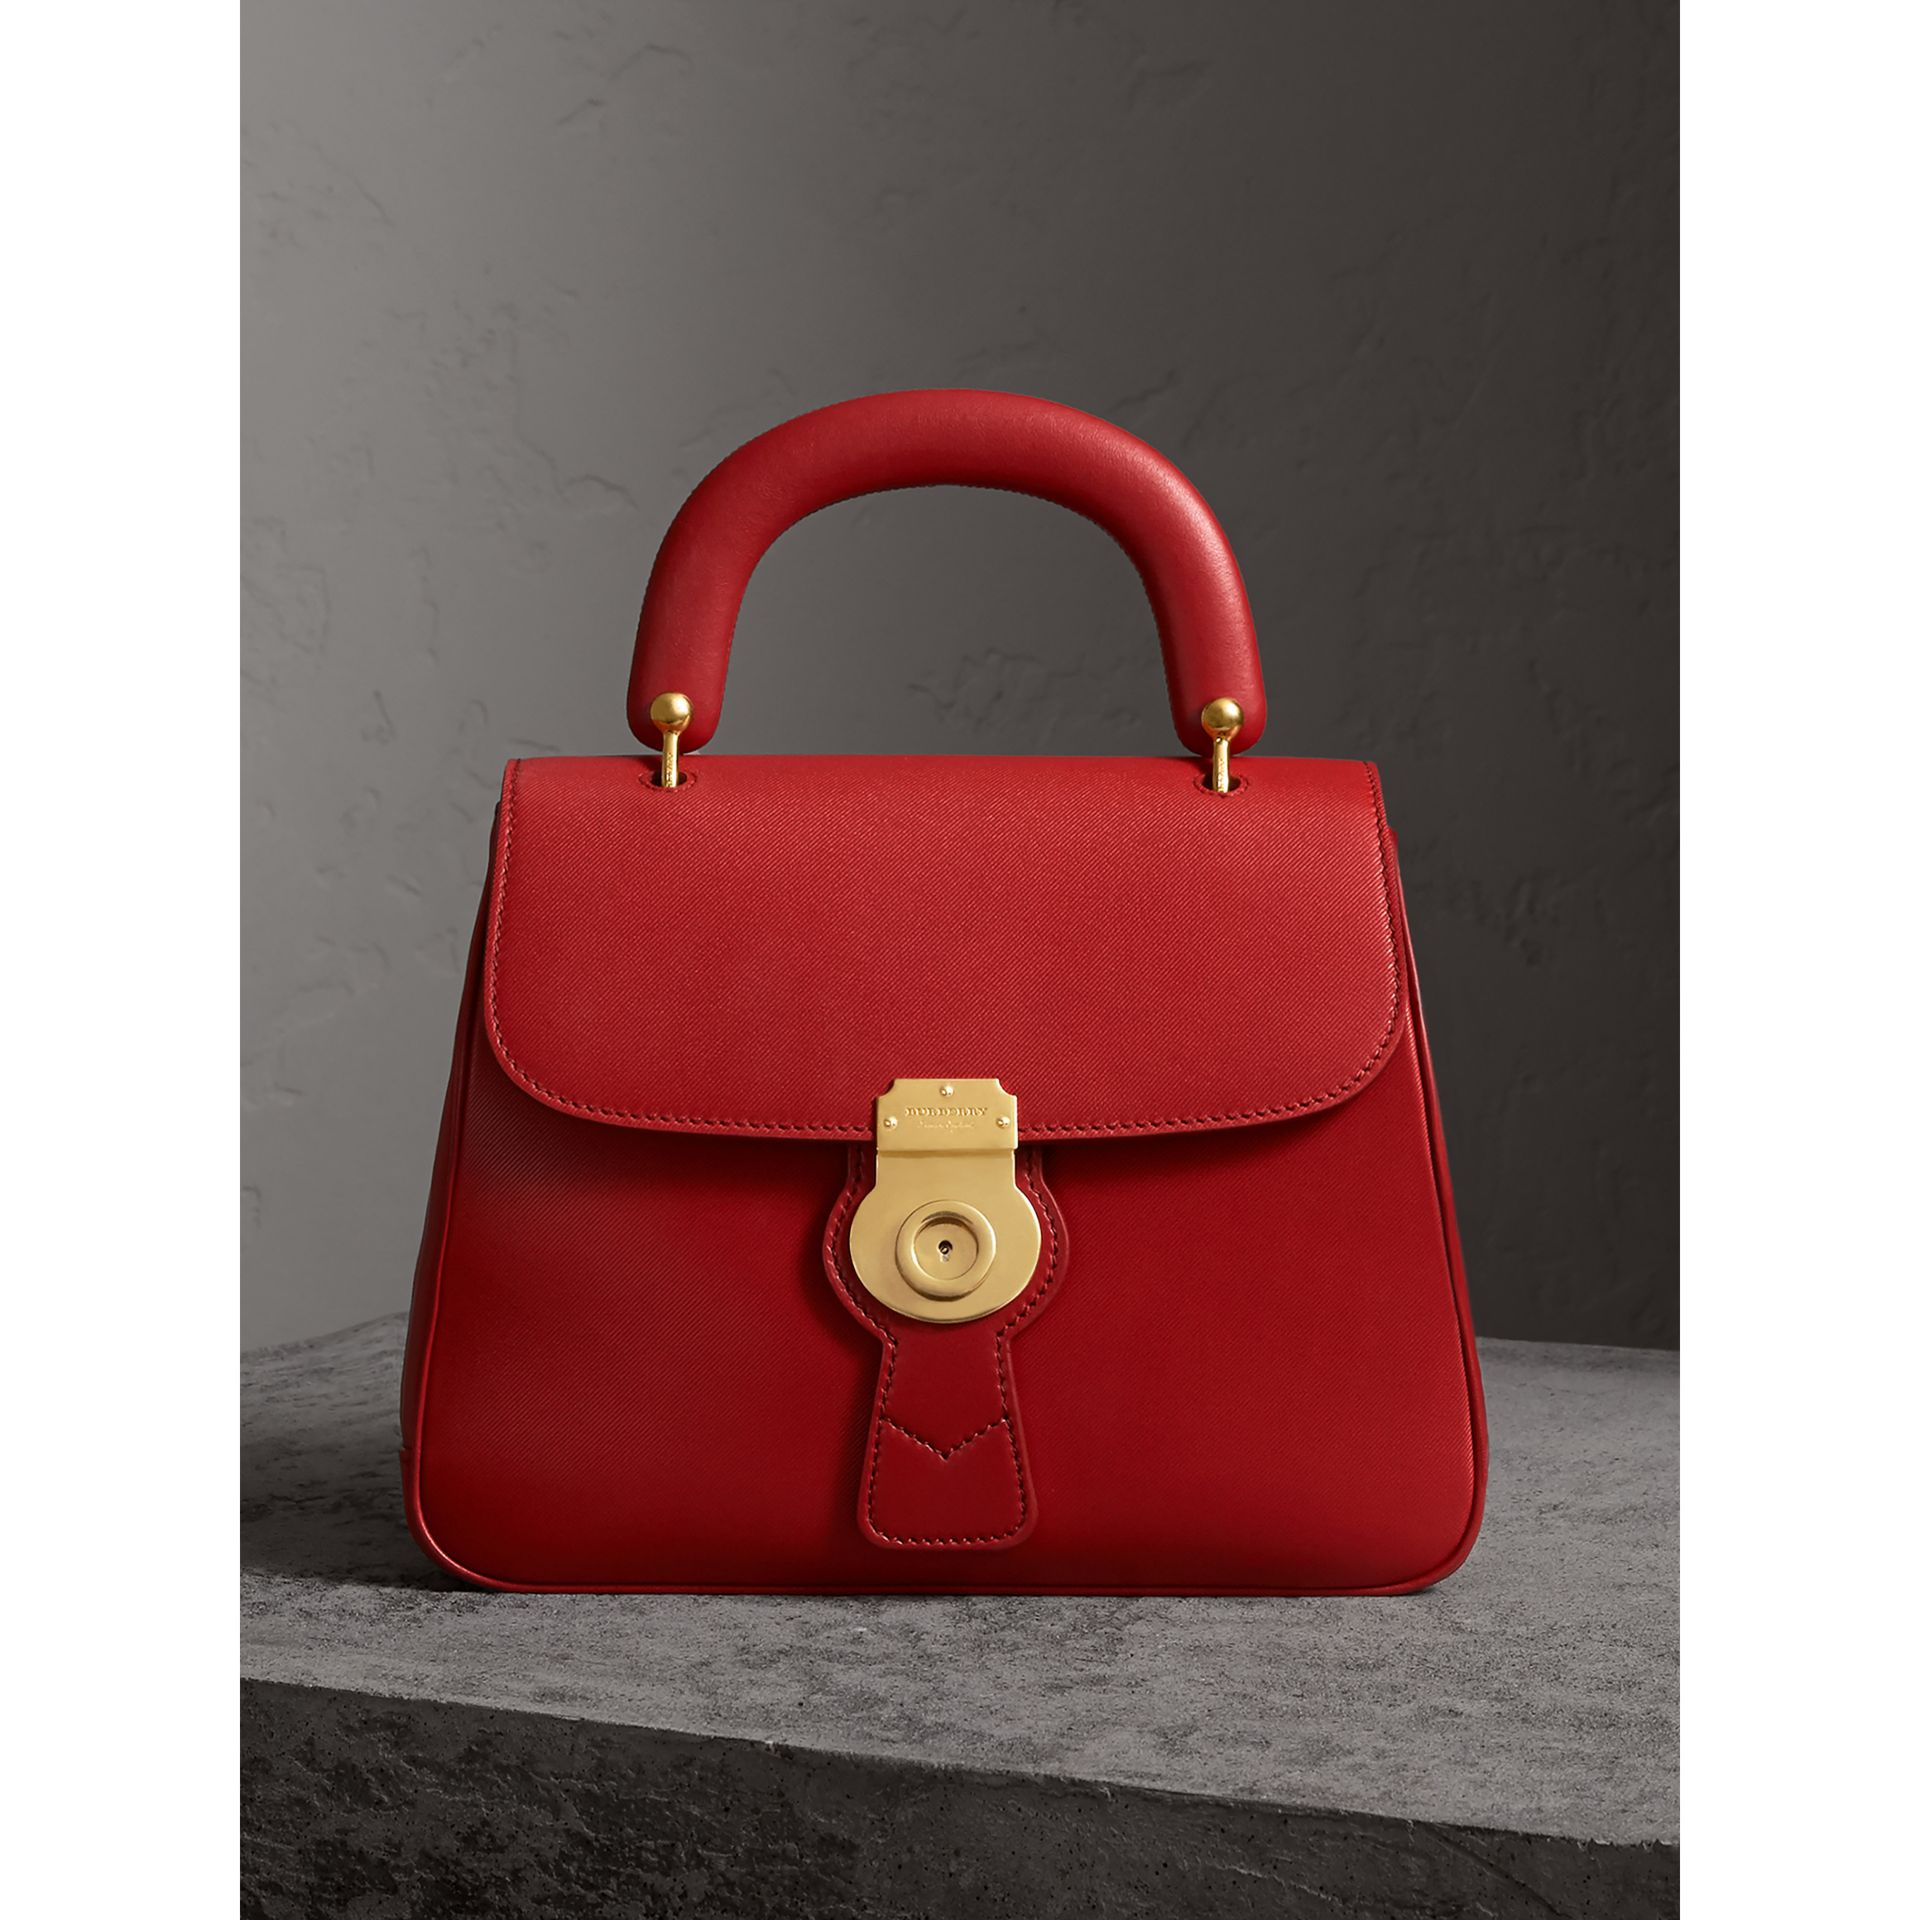 Burberry Dk88 Top Handle Medium Leather Satchel In Coral Red   ModeSens 8943649dd5